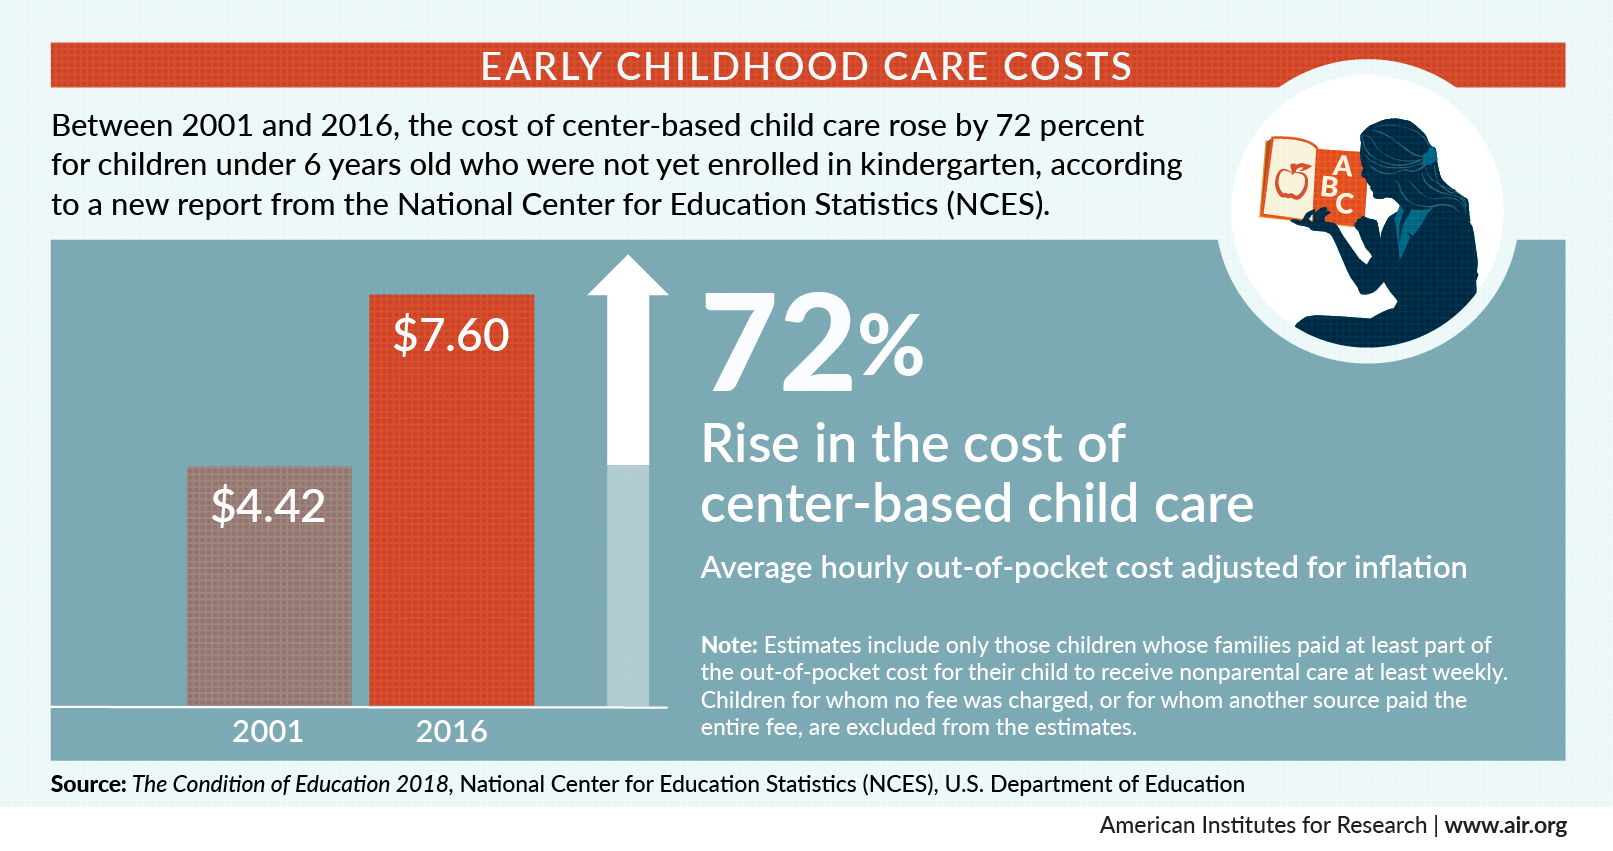 Infographic shows a 72% rise in center-based child care. The average hourly out-of-pocket cost adjusted for inflation: $4.42 in 2001, and $7.60 in 2016.